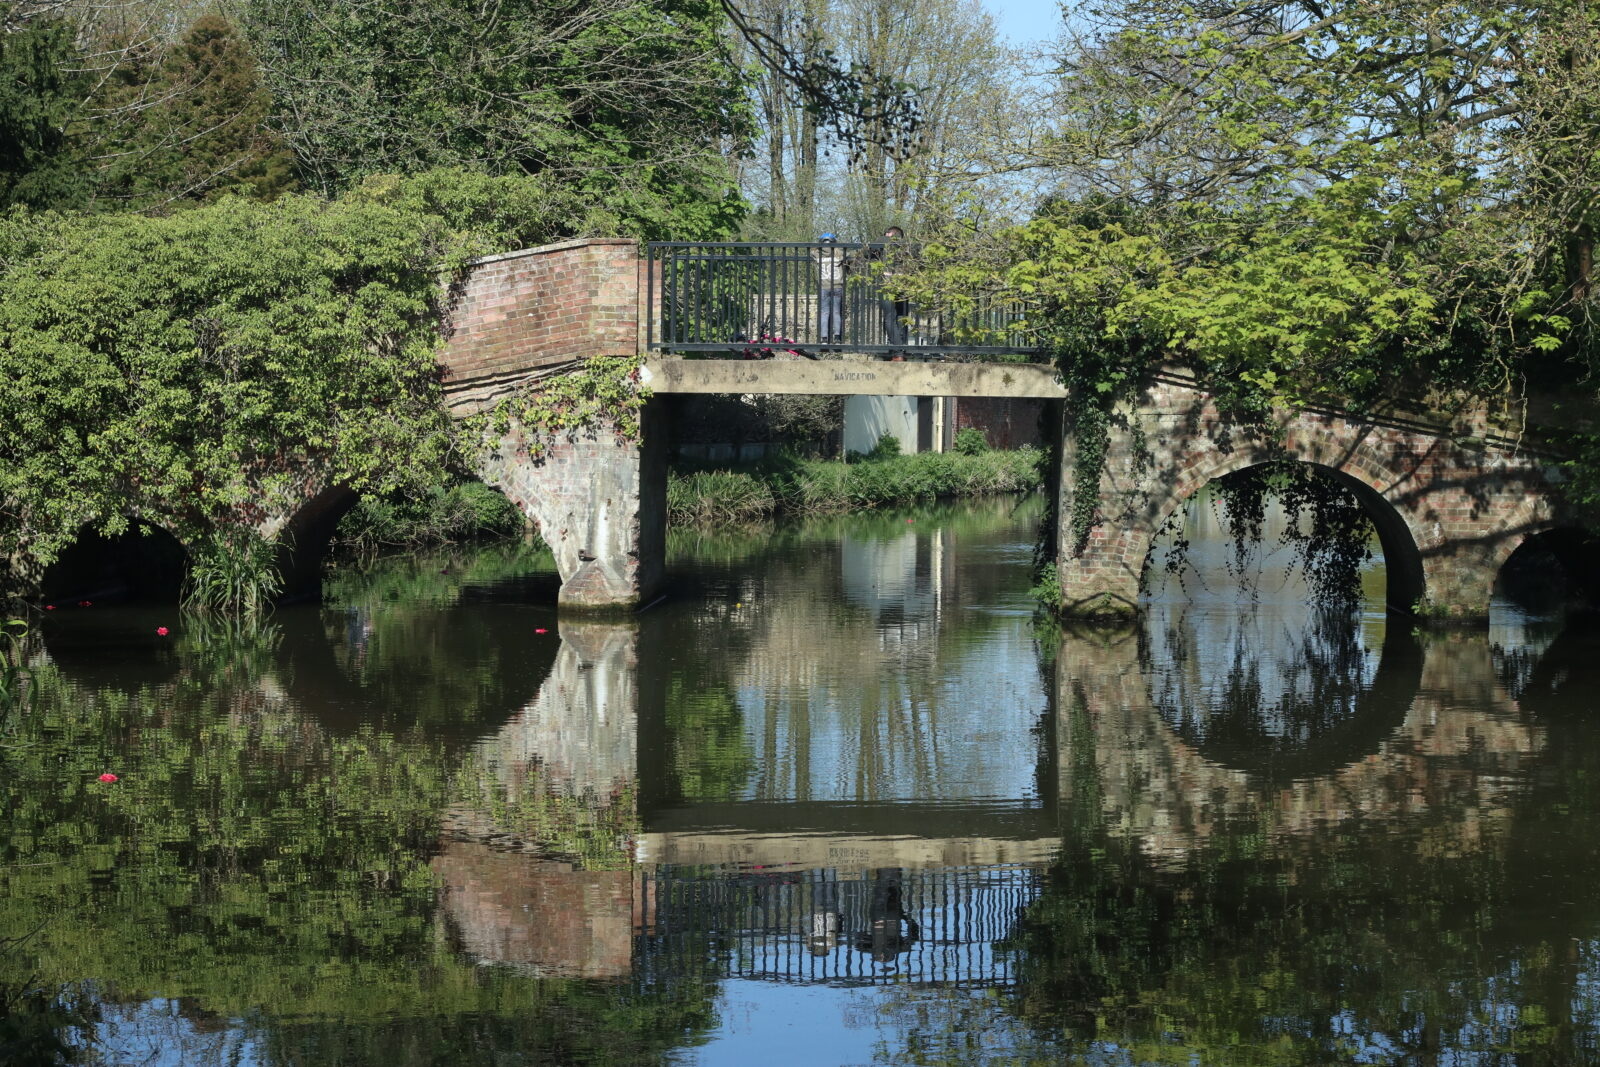 Bridge over River Wey